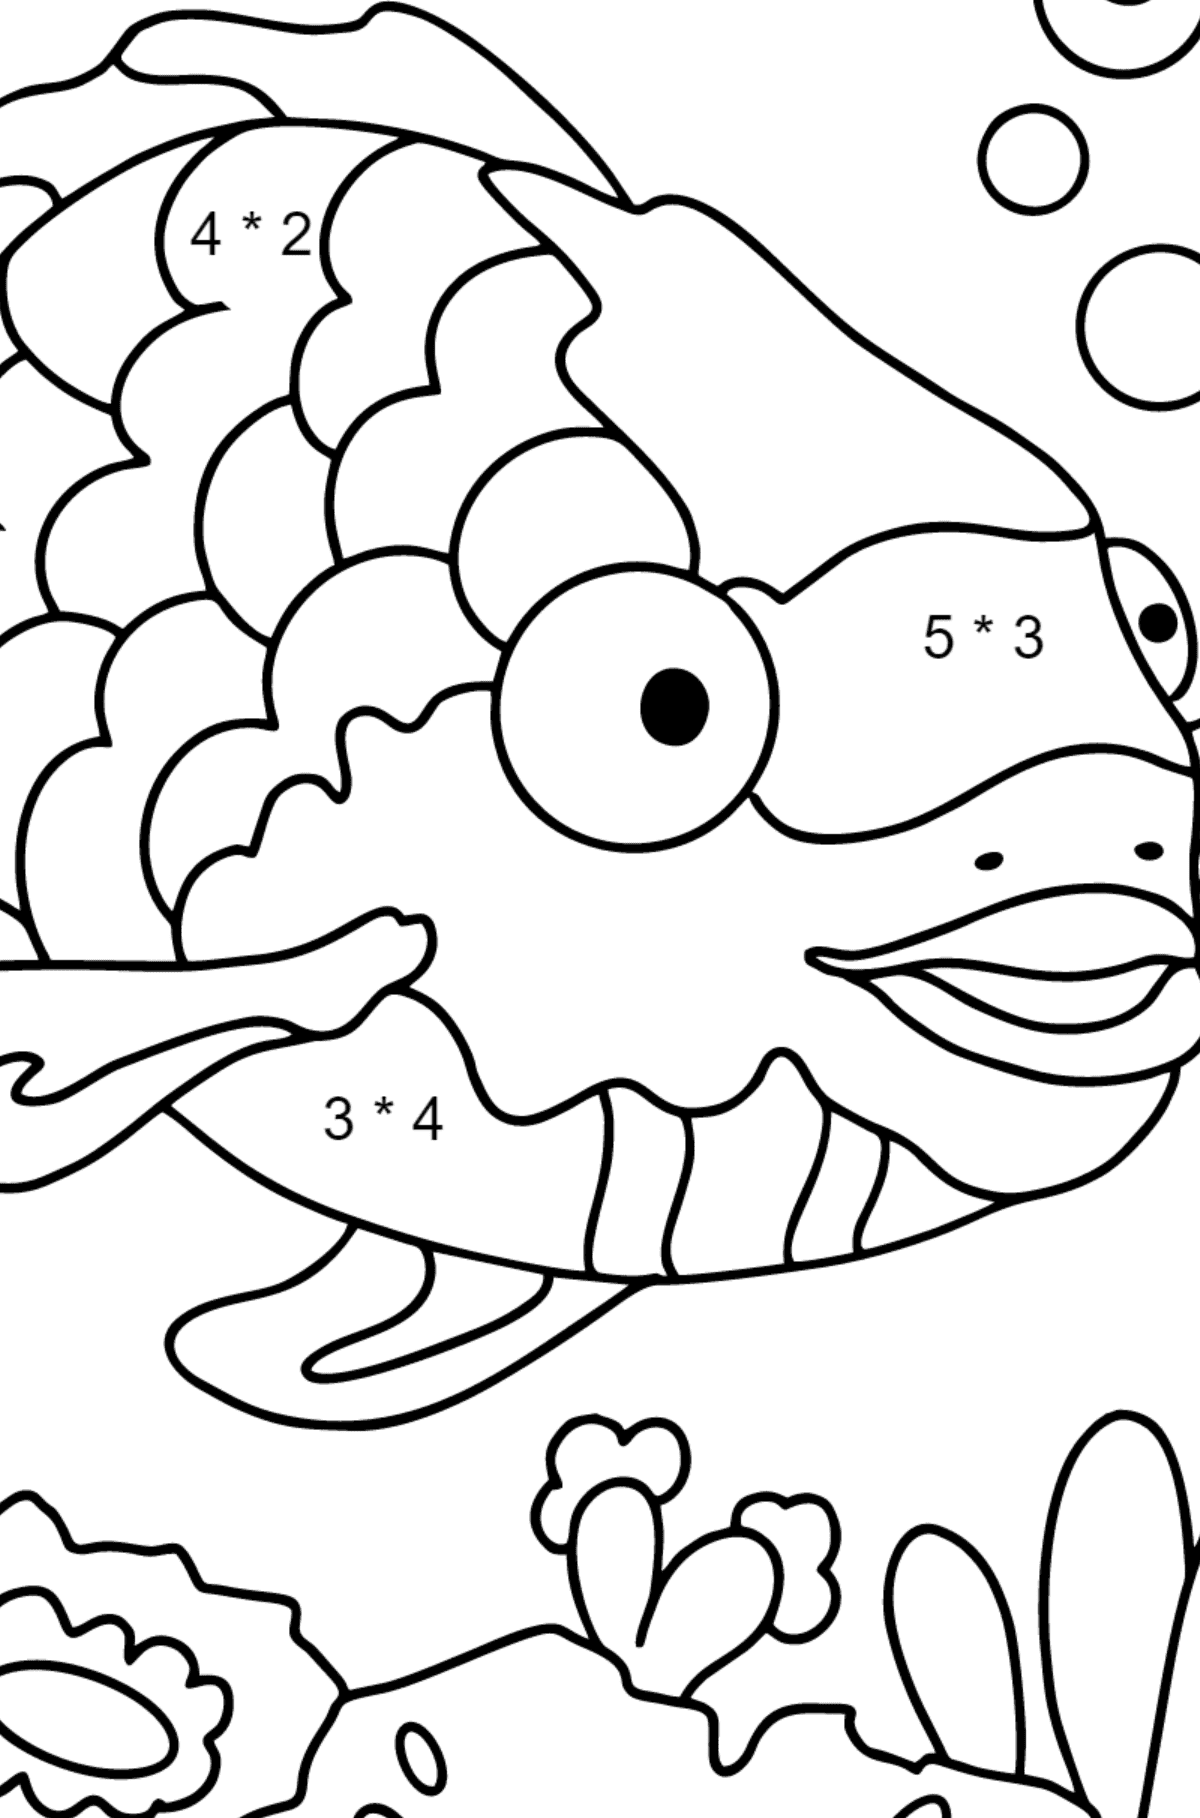 Coloring Page - A Fish with Multicolored Scales - Math Coloring - Multiplication for Kids